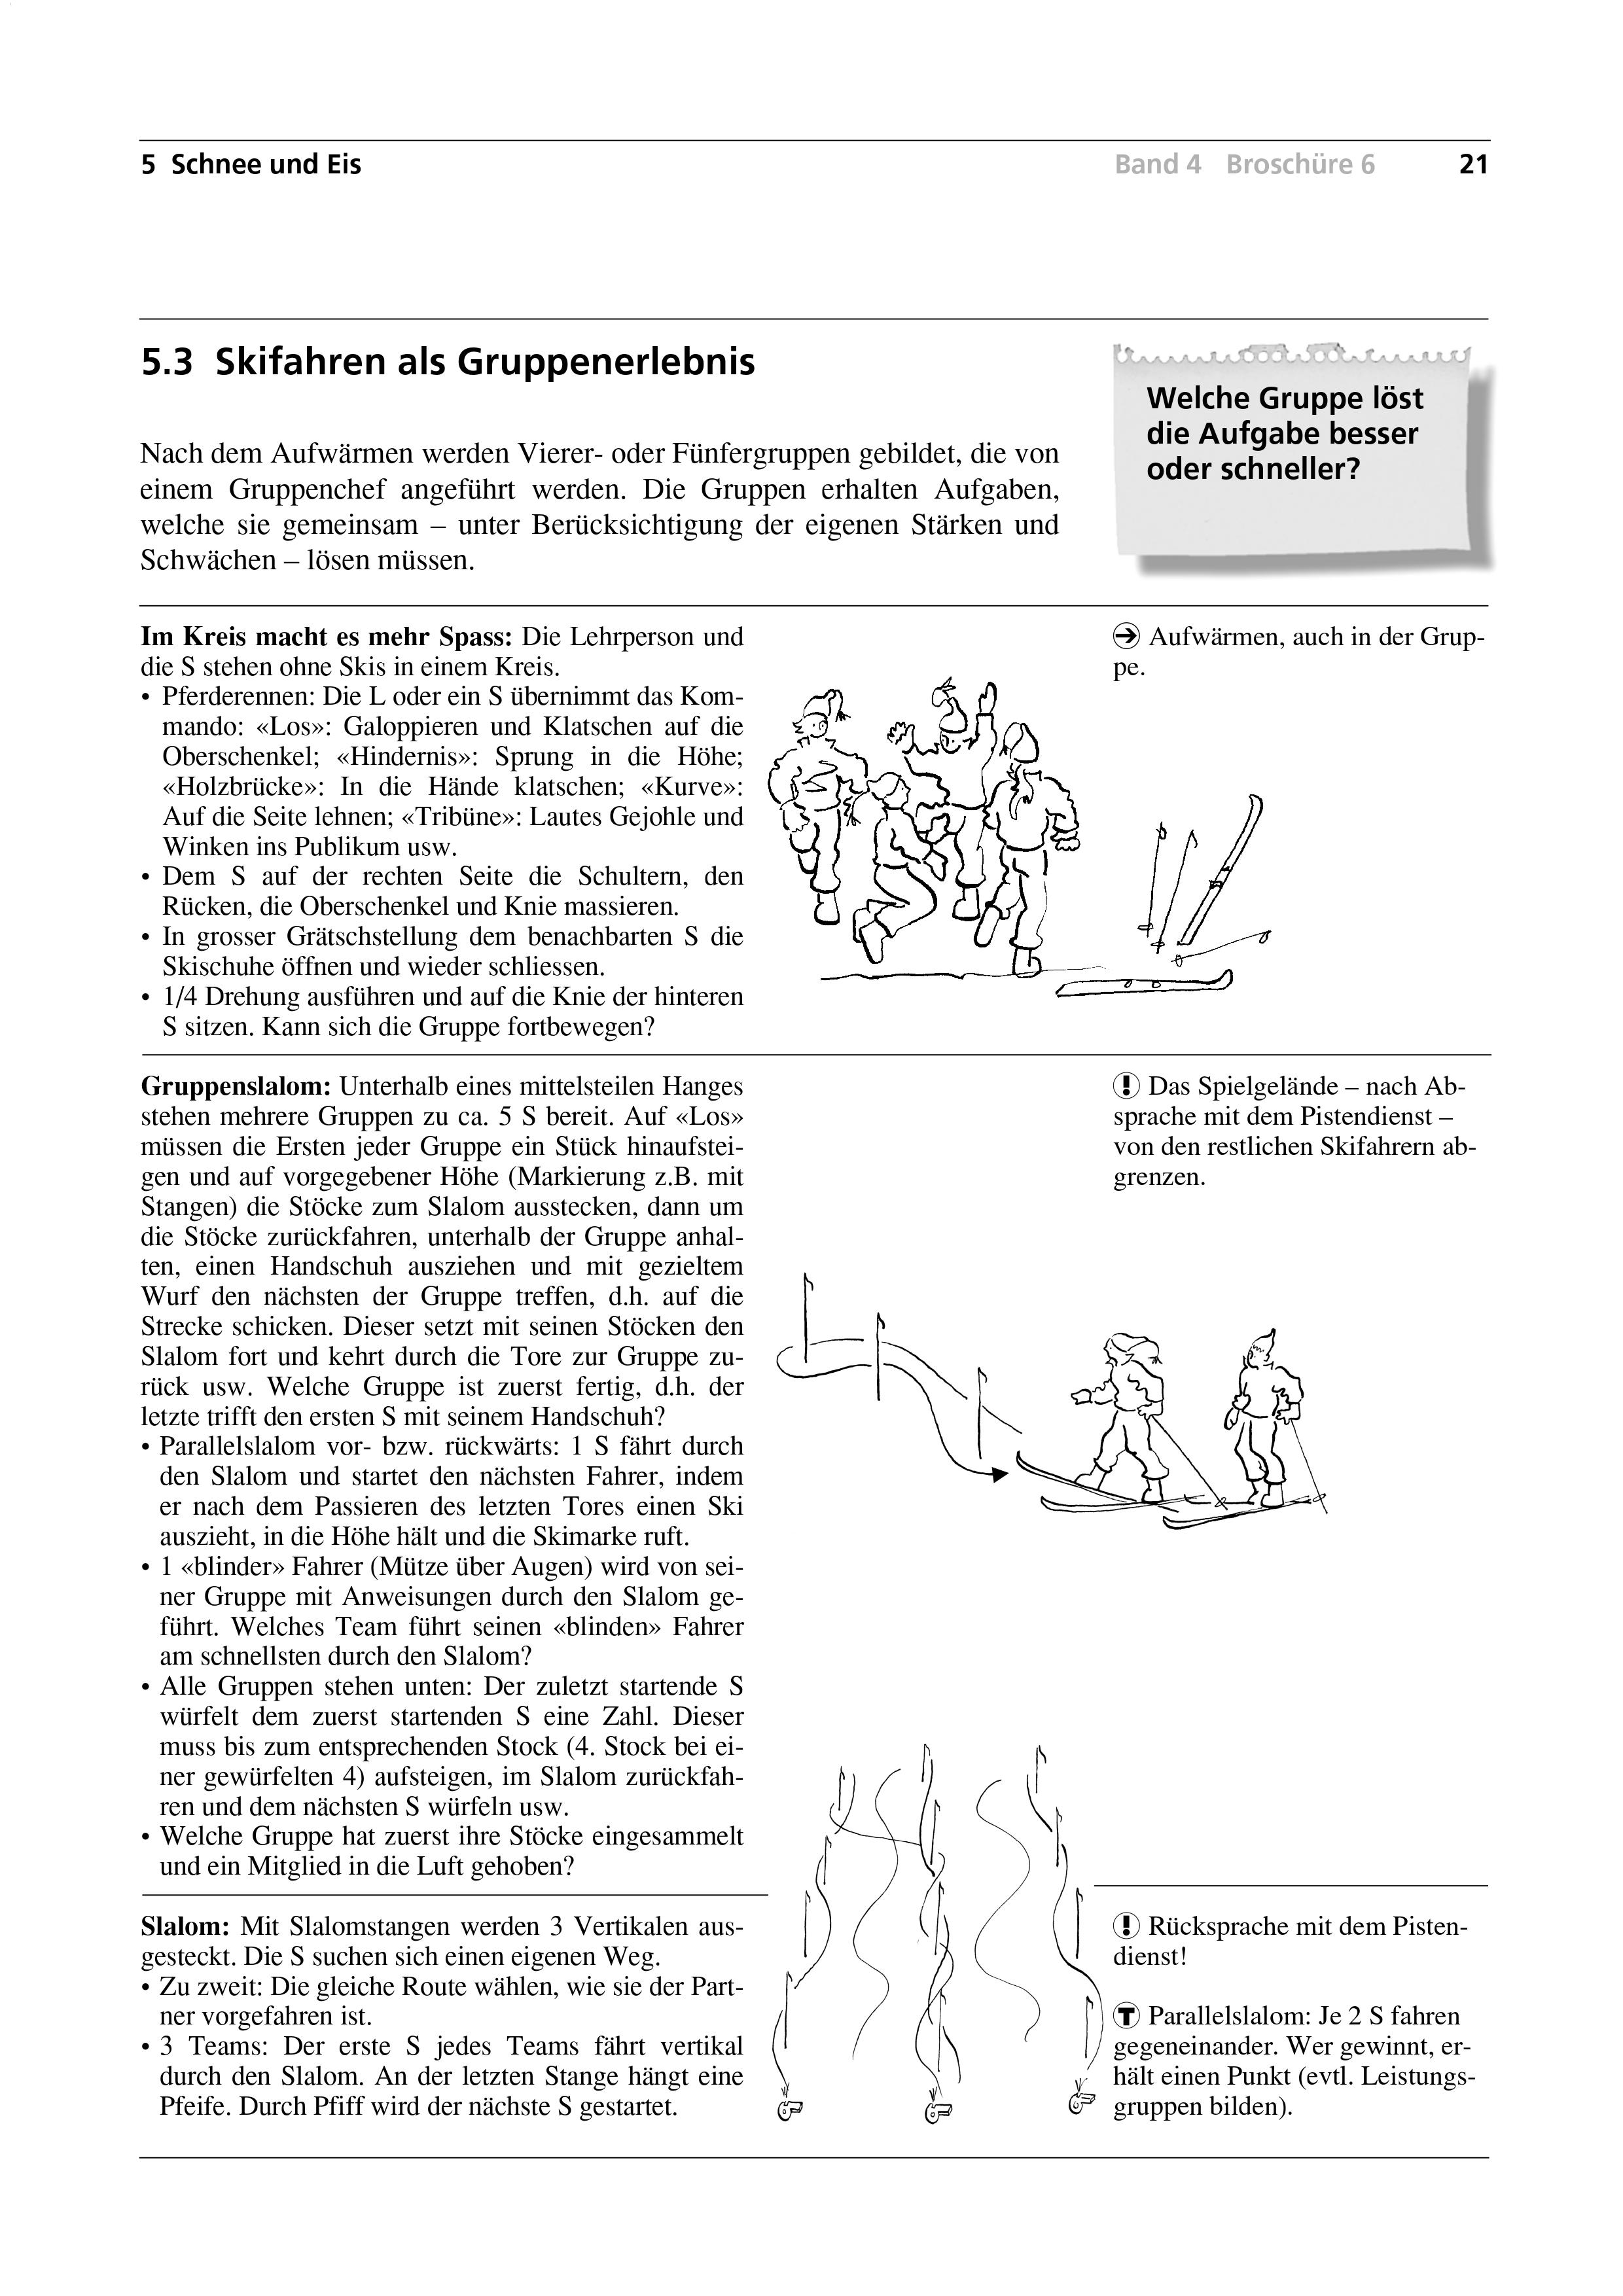 Preview image for LOM object Skifahren als Gruppenerlebnis